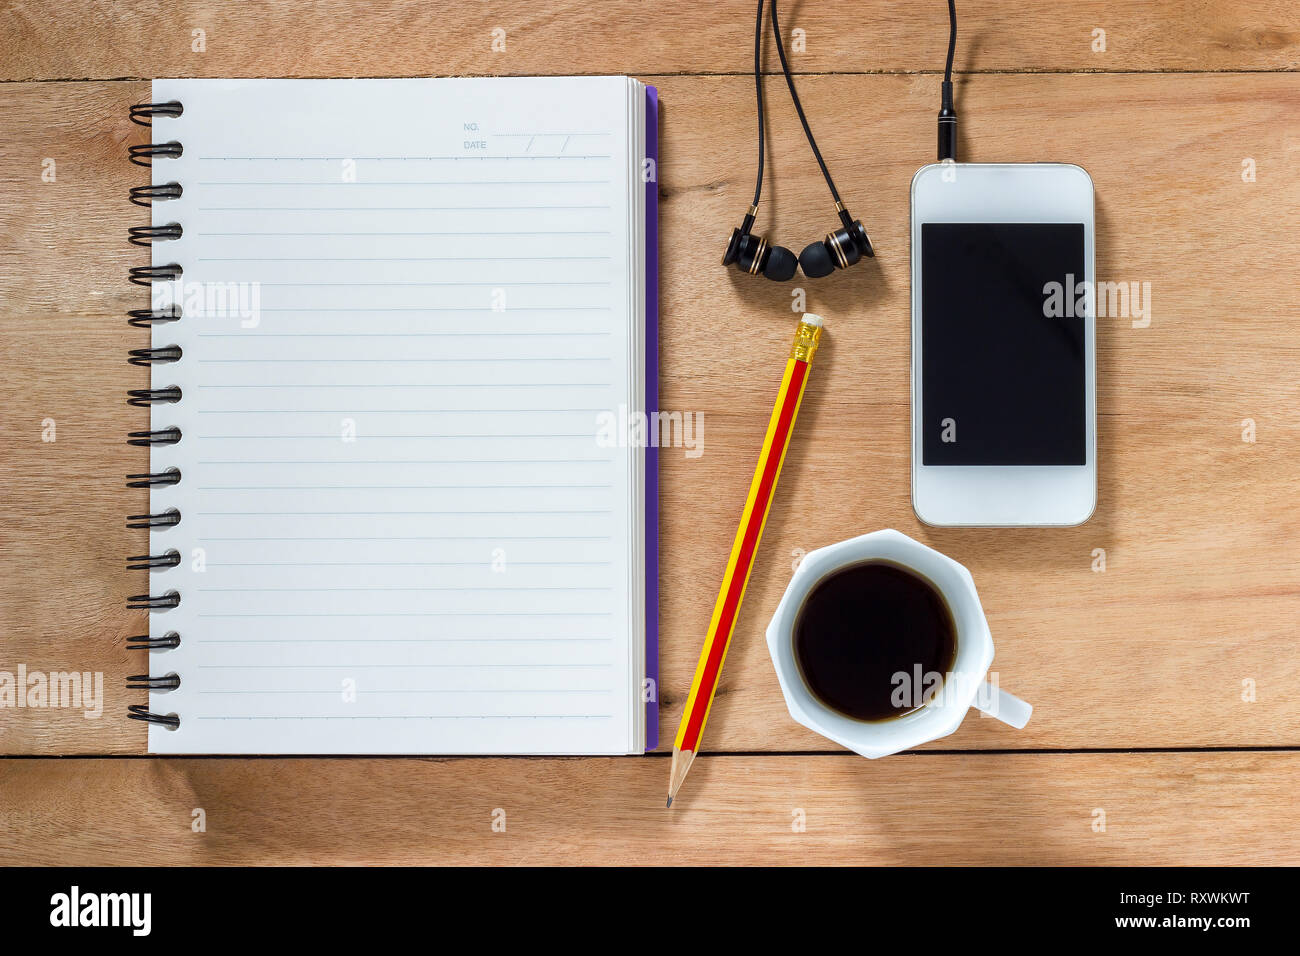 Bank notebook with pencil laying on the brown table. White mobile with earphones and black coffee put on the table as well. - Stock Image